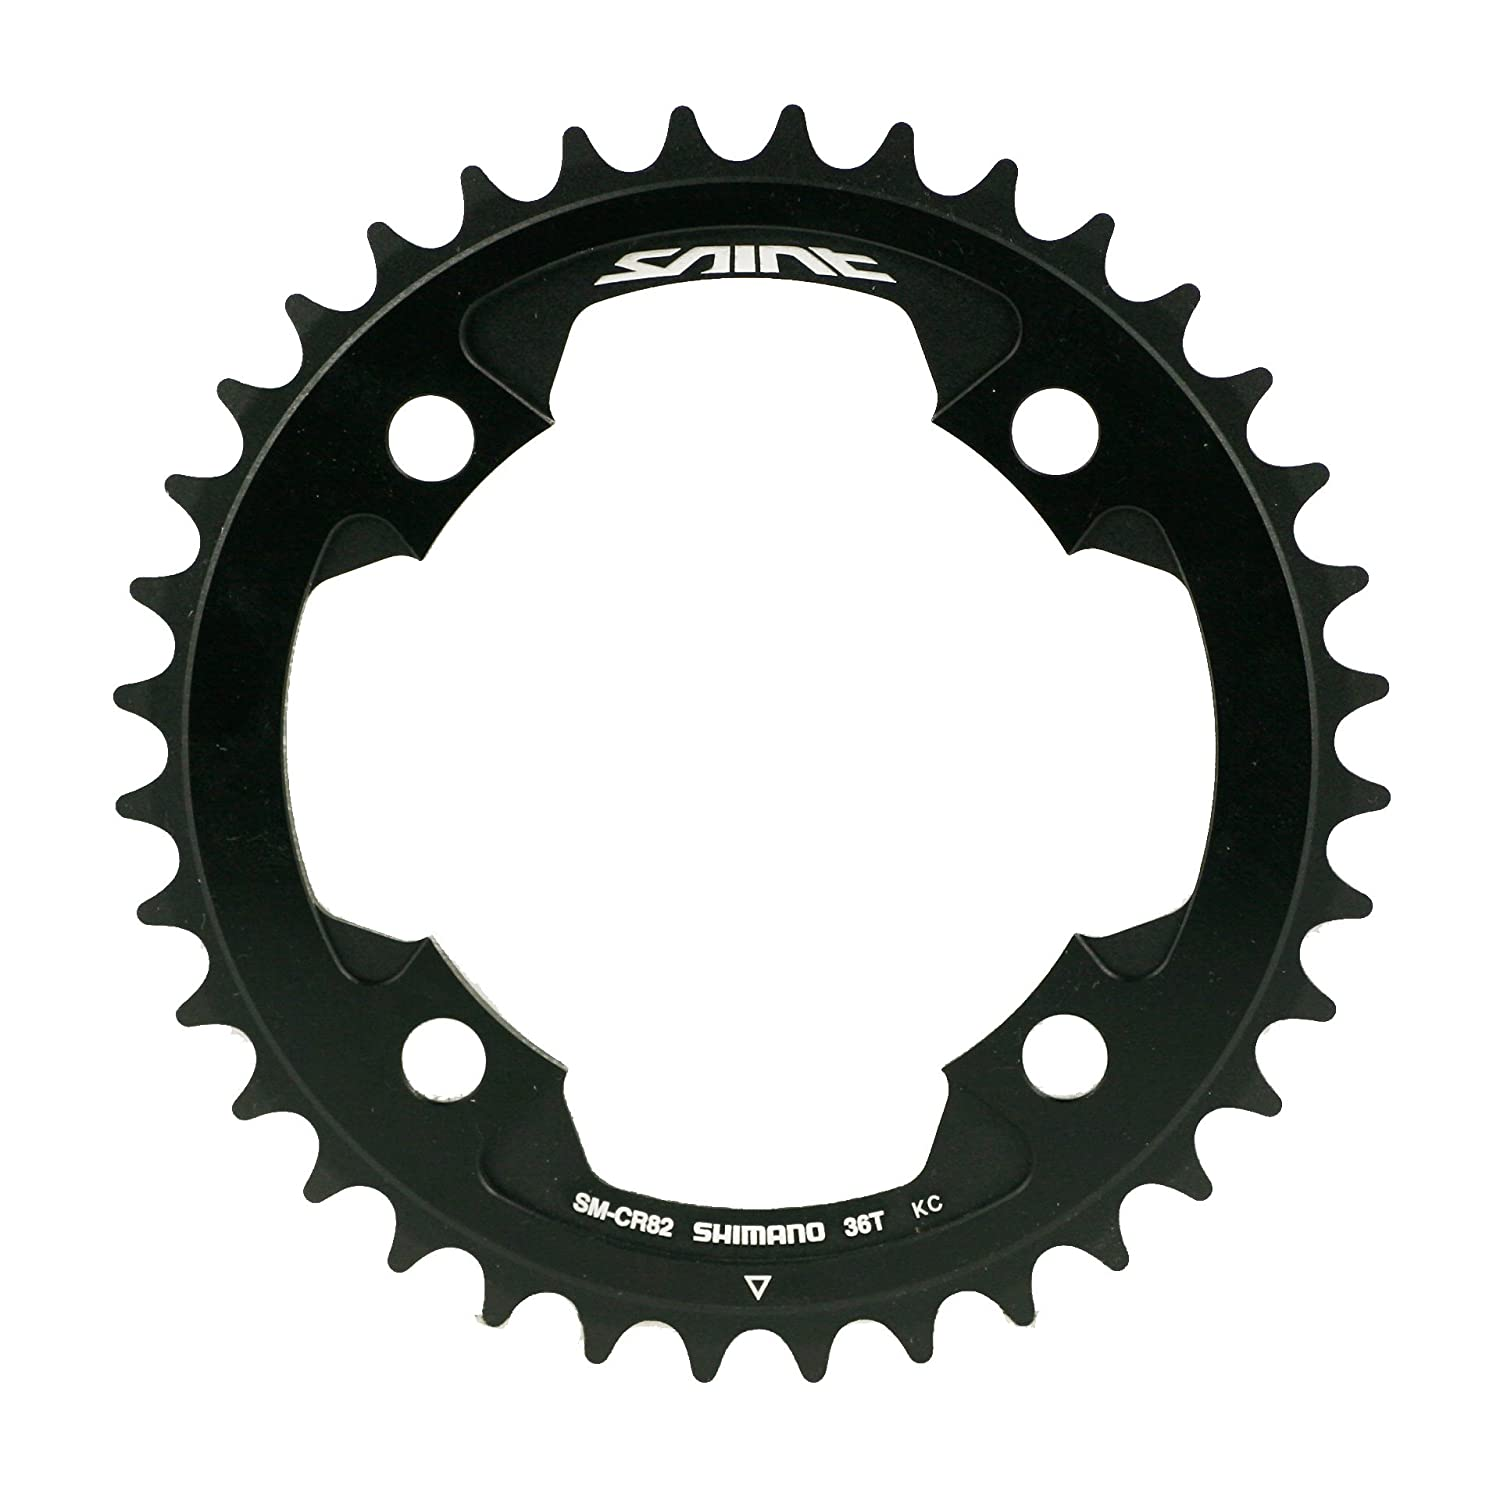 Shimano SM-Cr82 Saint DH Single Speed Chainring